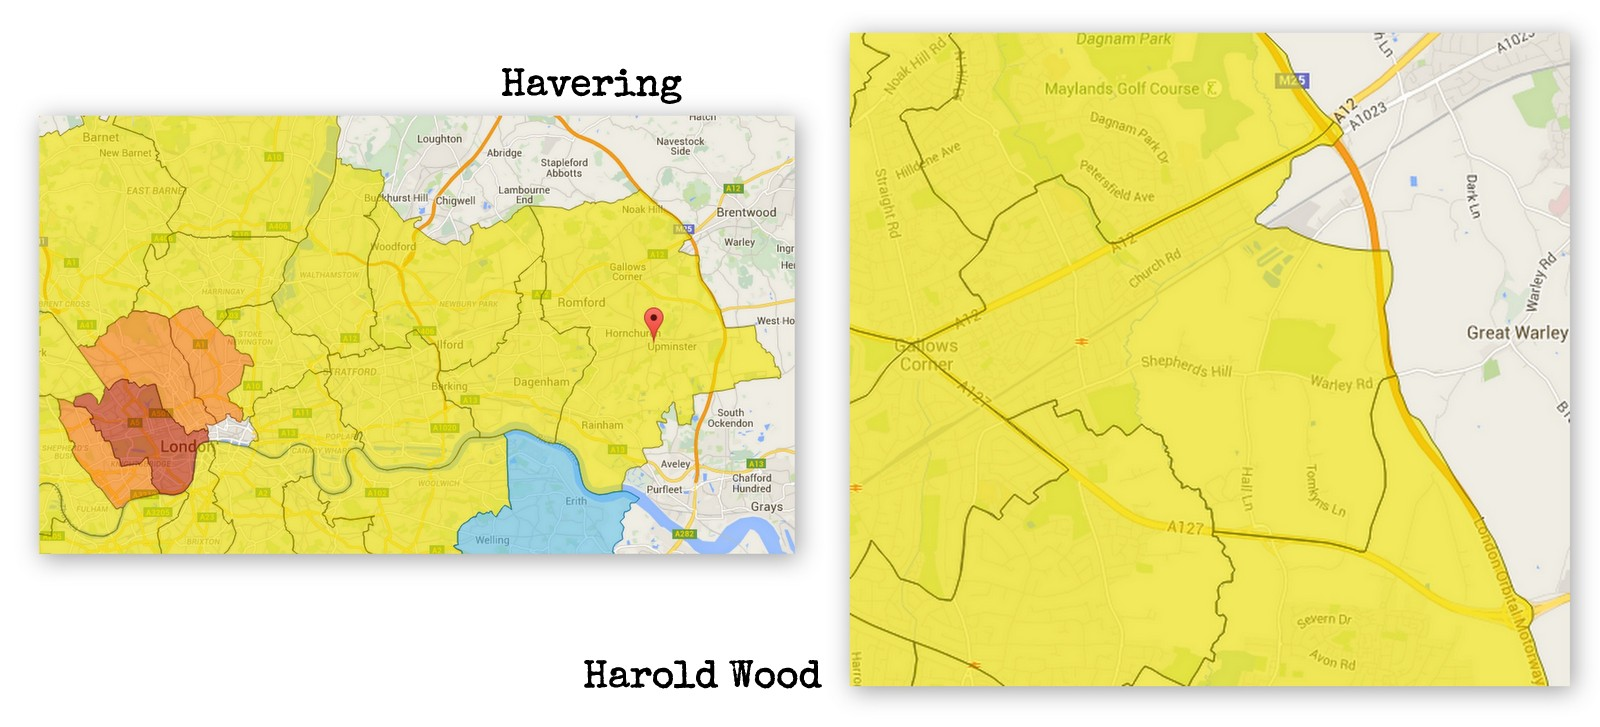 About Havering and Harold Wood